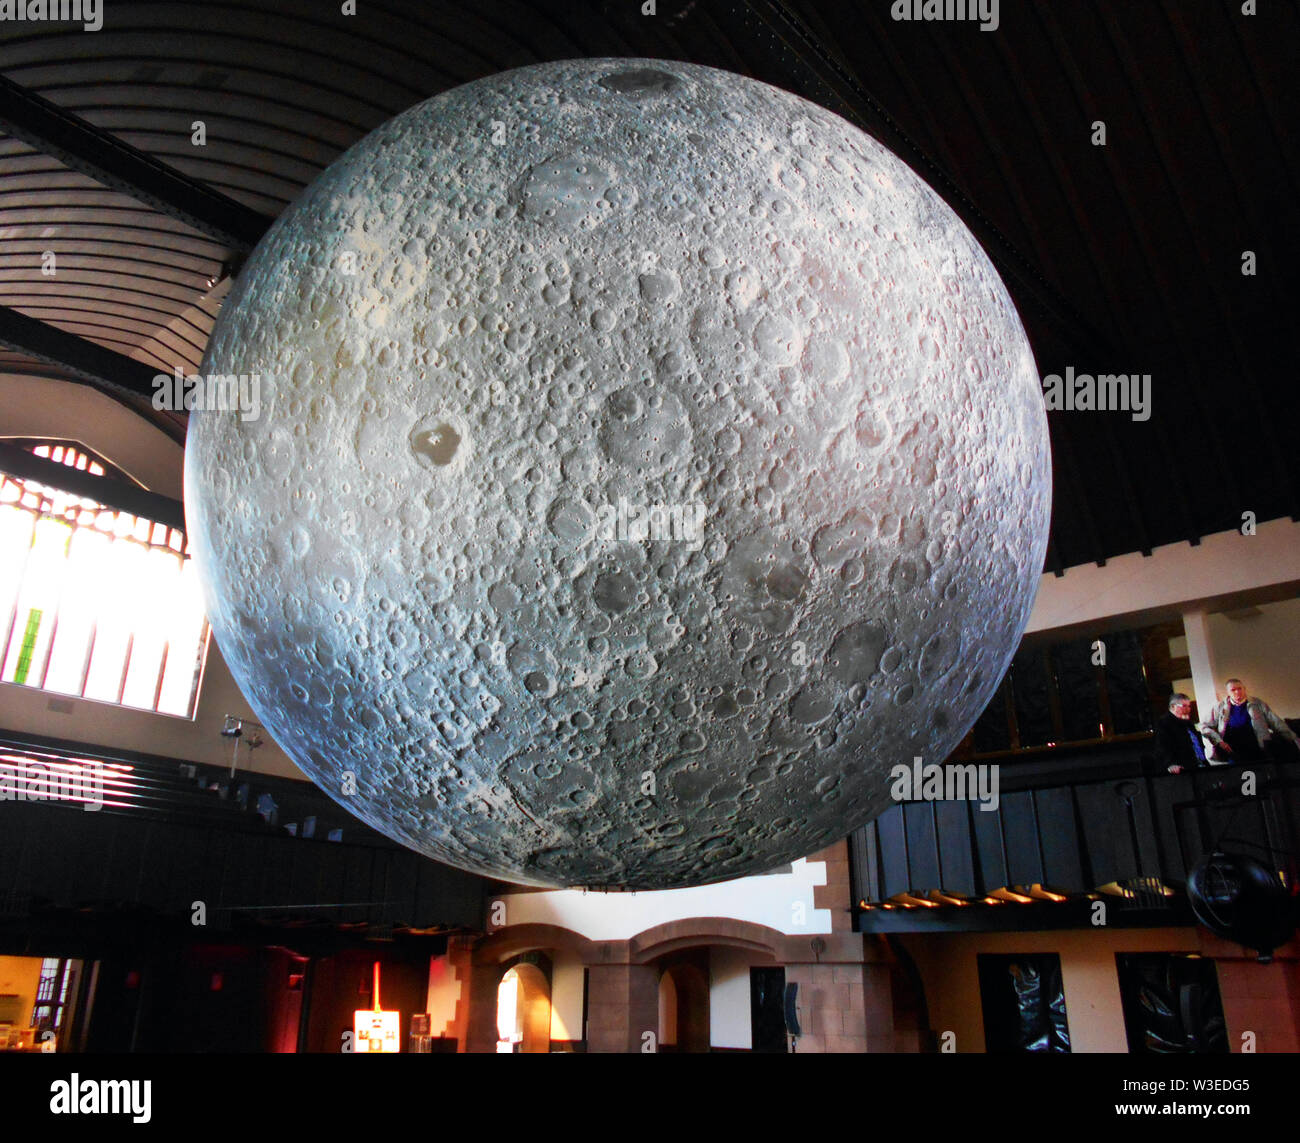 This massive art work is called, The Museum of the Moon, and is 7 metres in diameter and is made up from many, accurate images from NASA of the lunar surface, and is on a scale of 1:500,000. Each centimetre of the internally lit spherical sculpture represents 5km of the moons surface. The artist is Luke Jerram and this photo is from Glasgow where it was on display in 2018. ALAMY/ Alan Wylie © - Stock Image